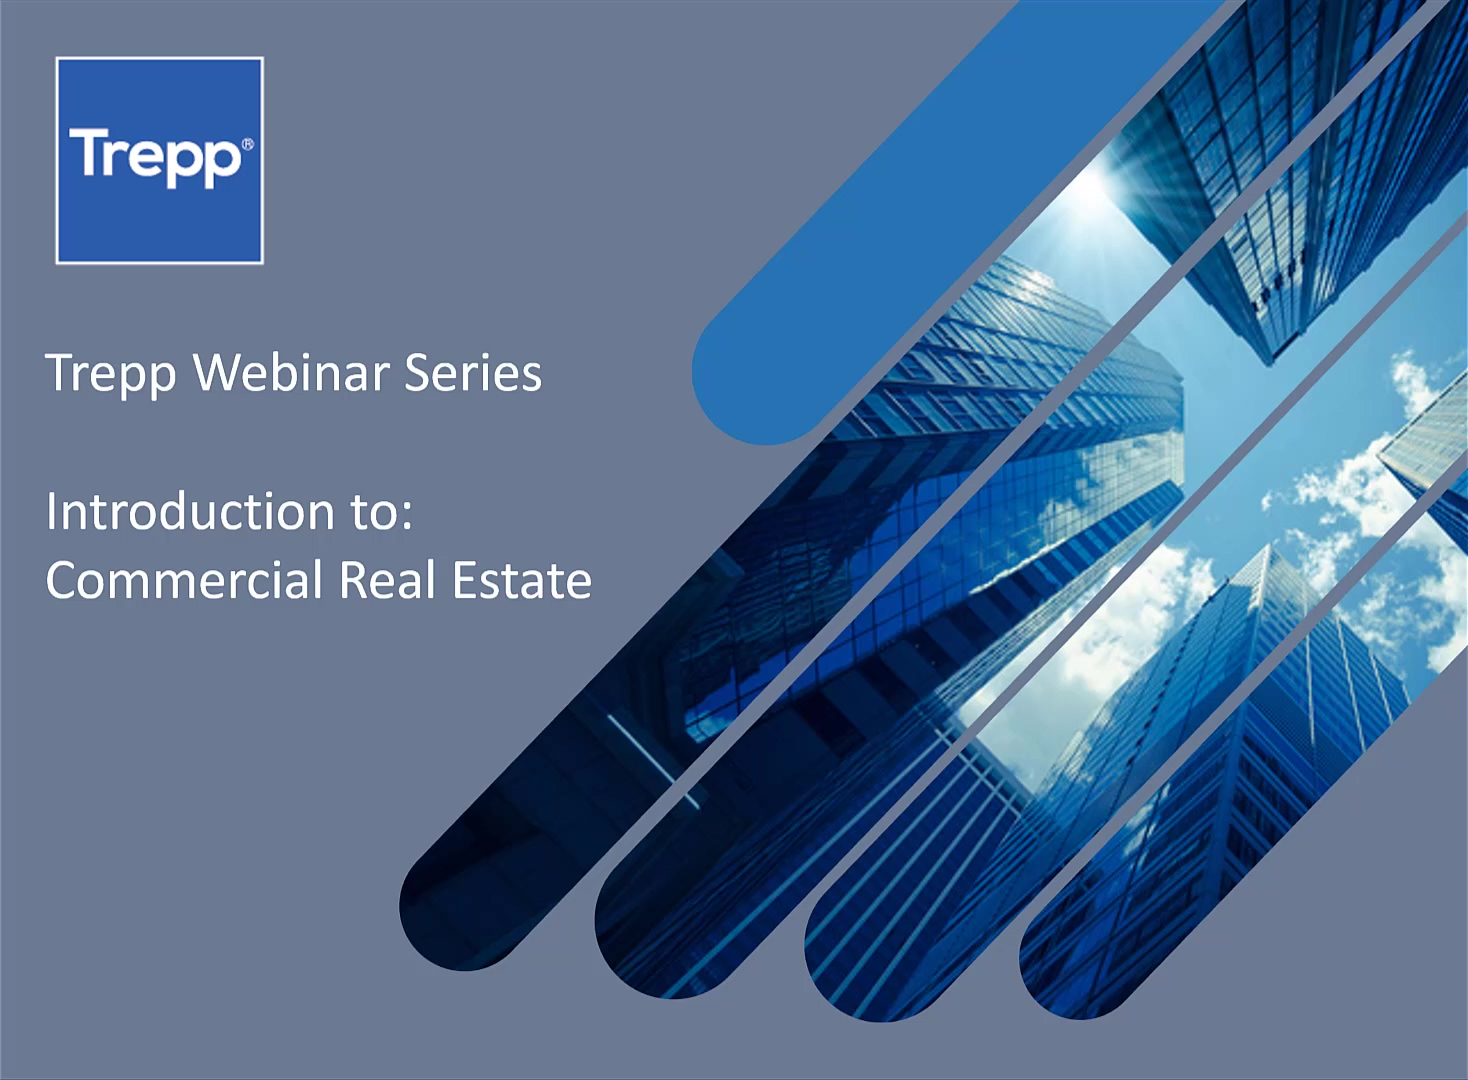 CRE Introduction Webinar